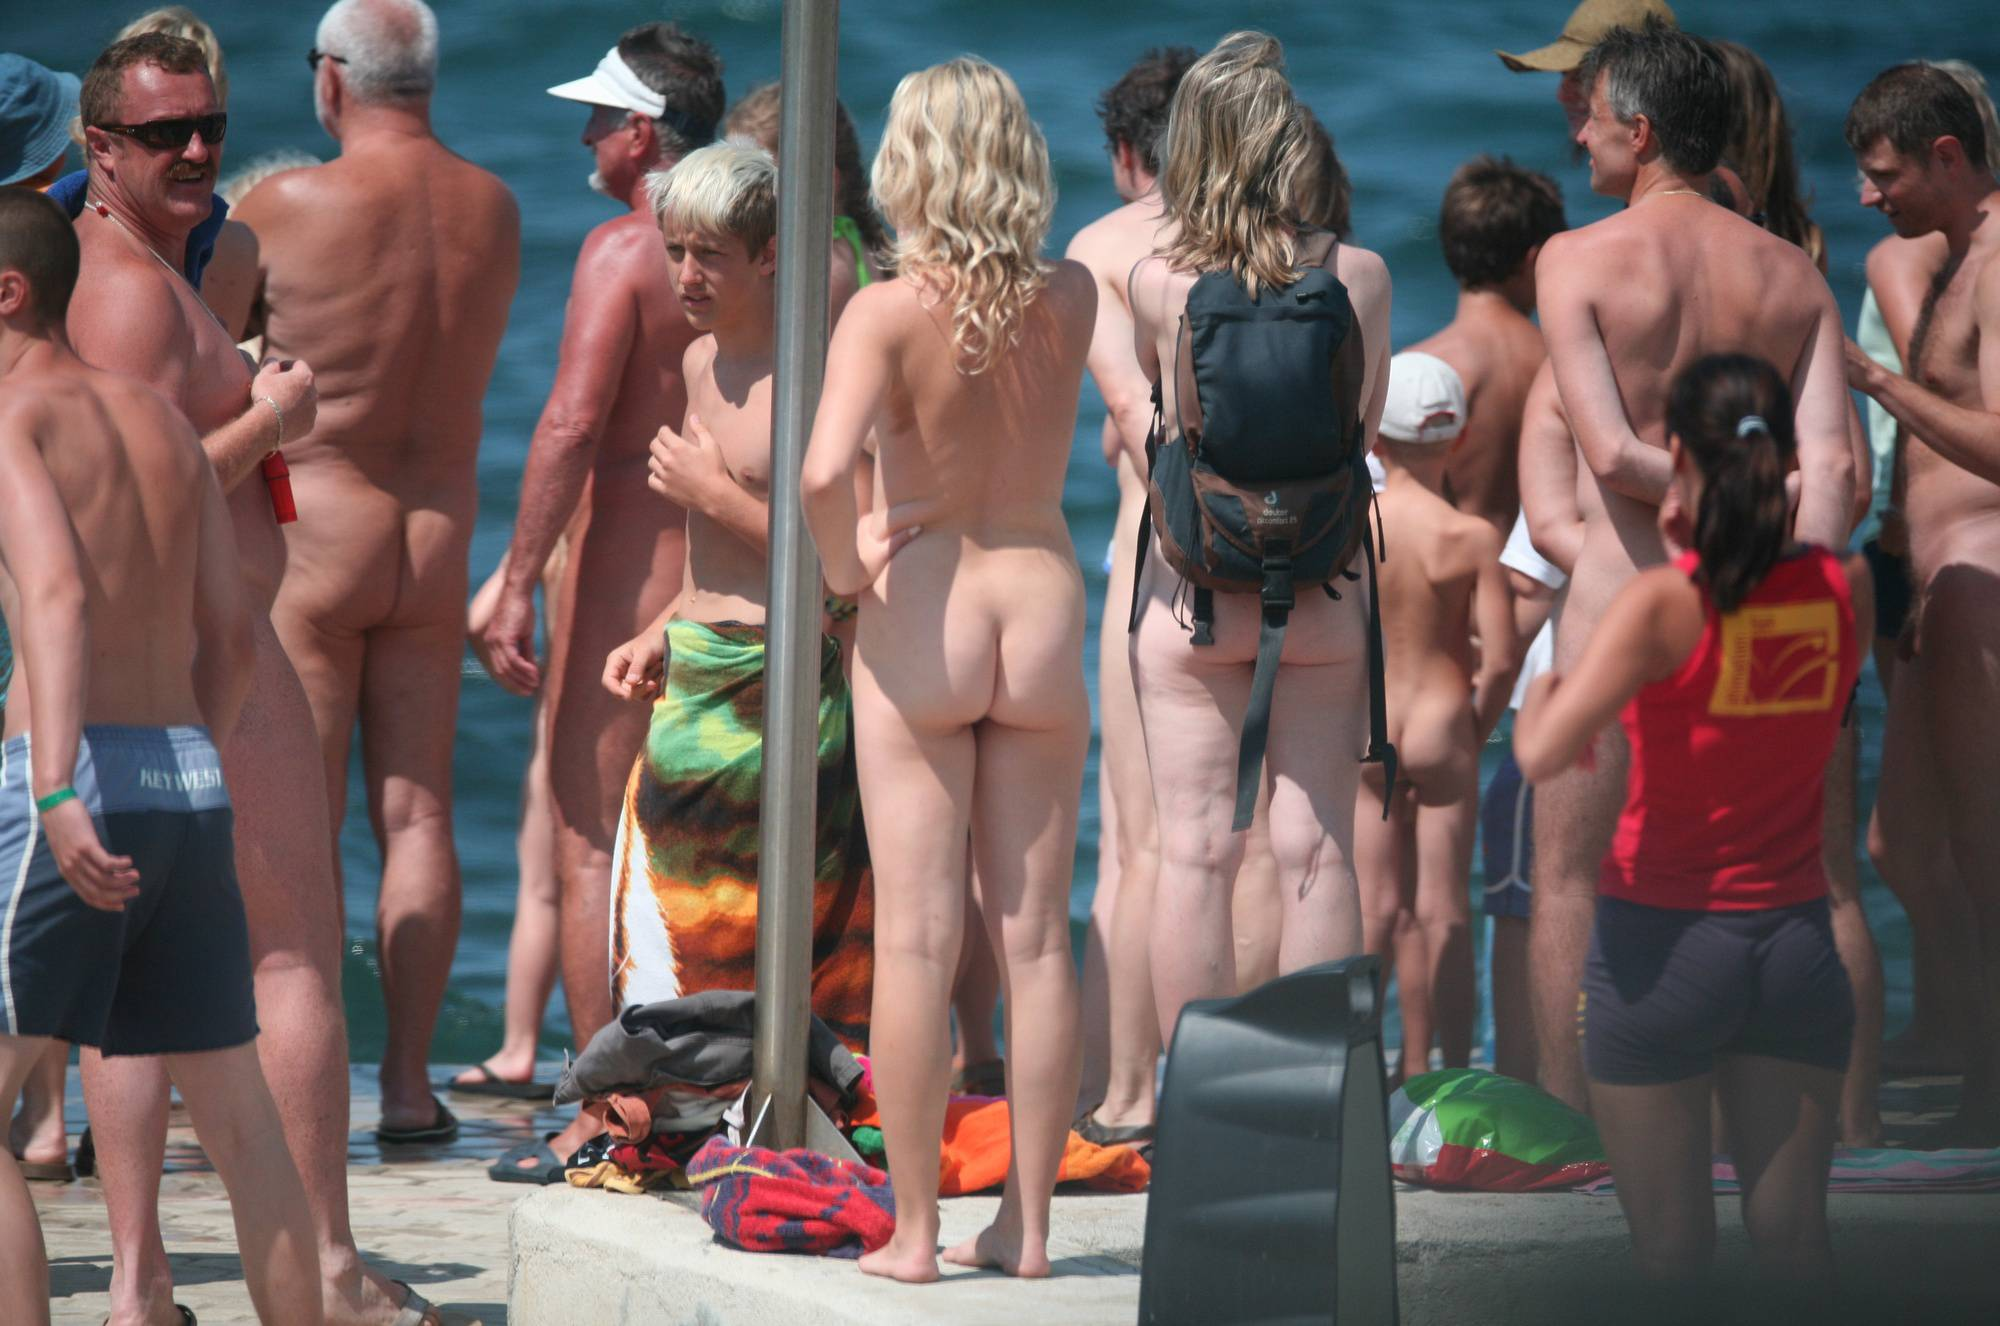 Nudist Gallery Pier Sand Square Group - 2